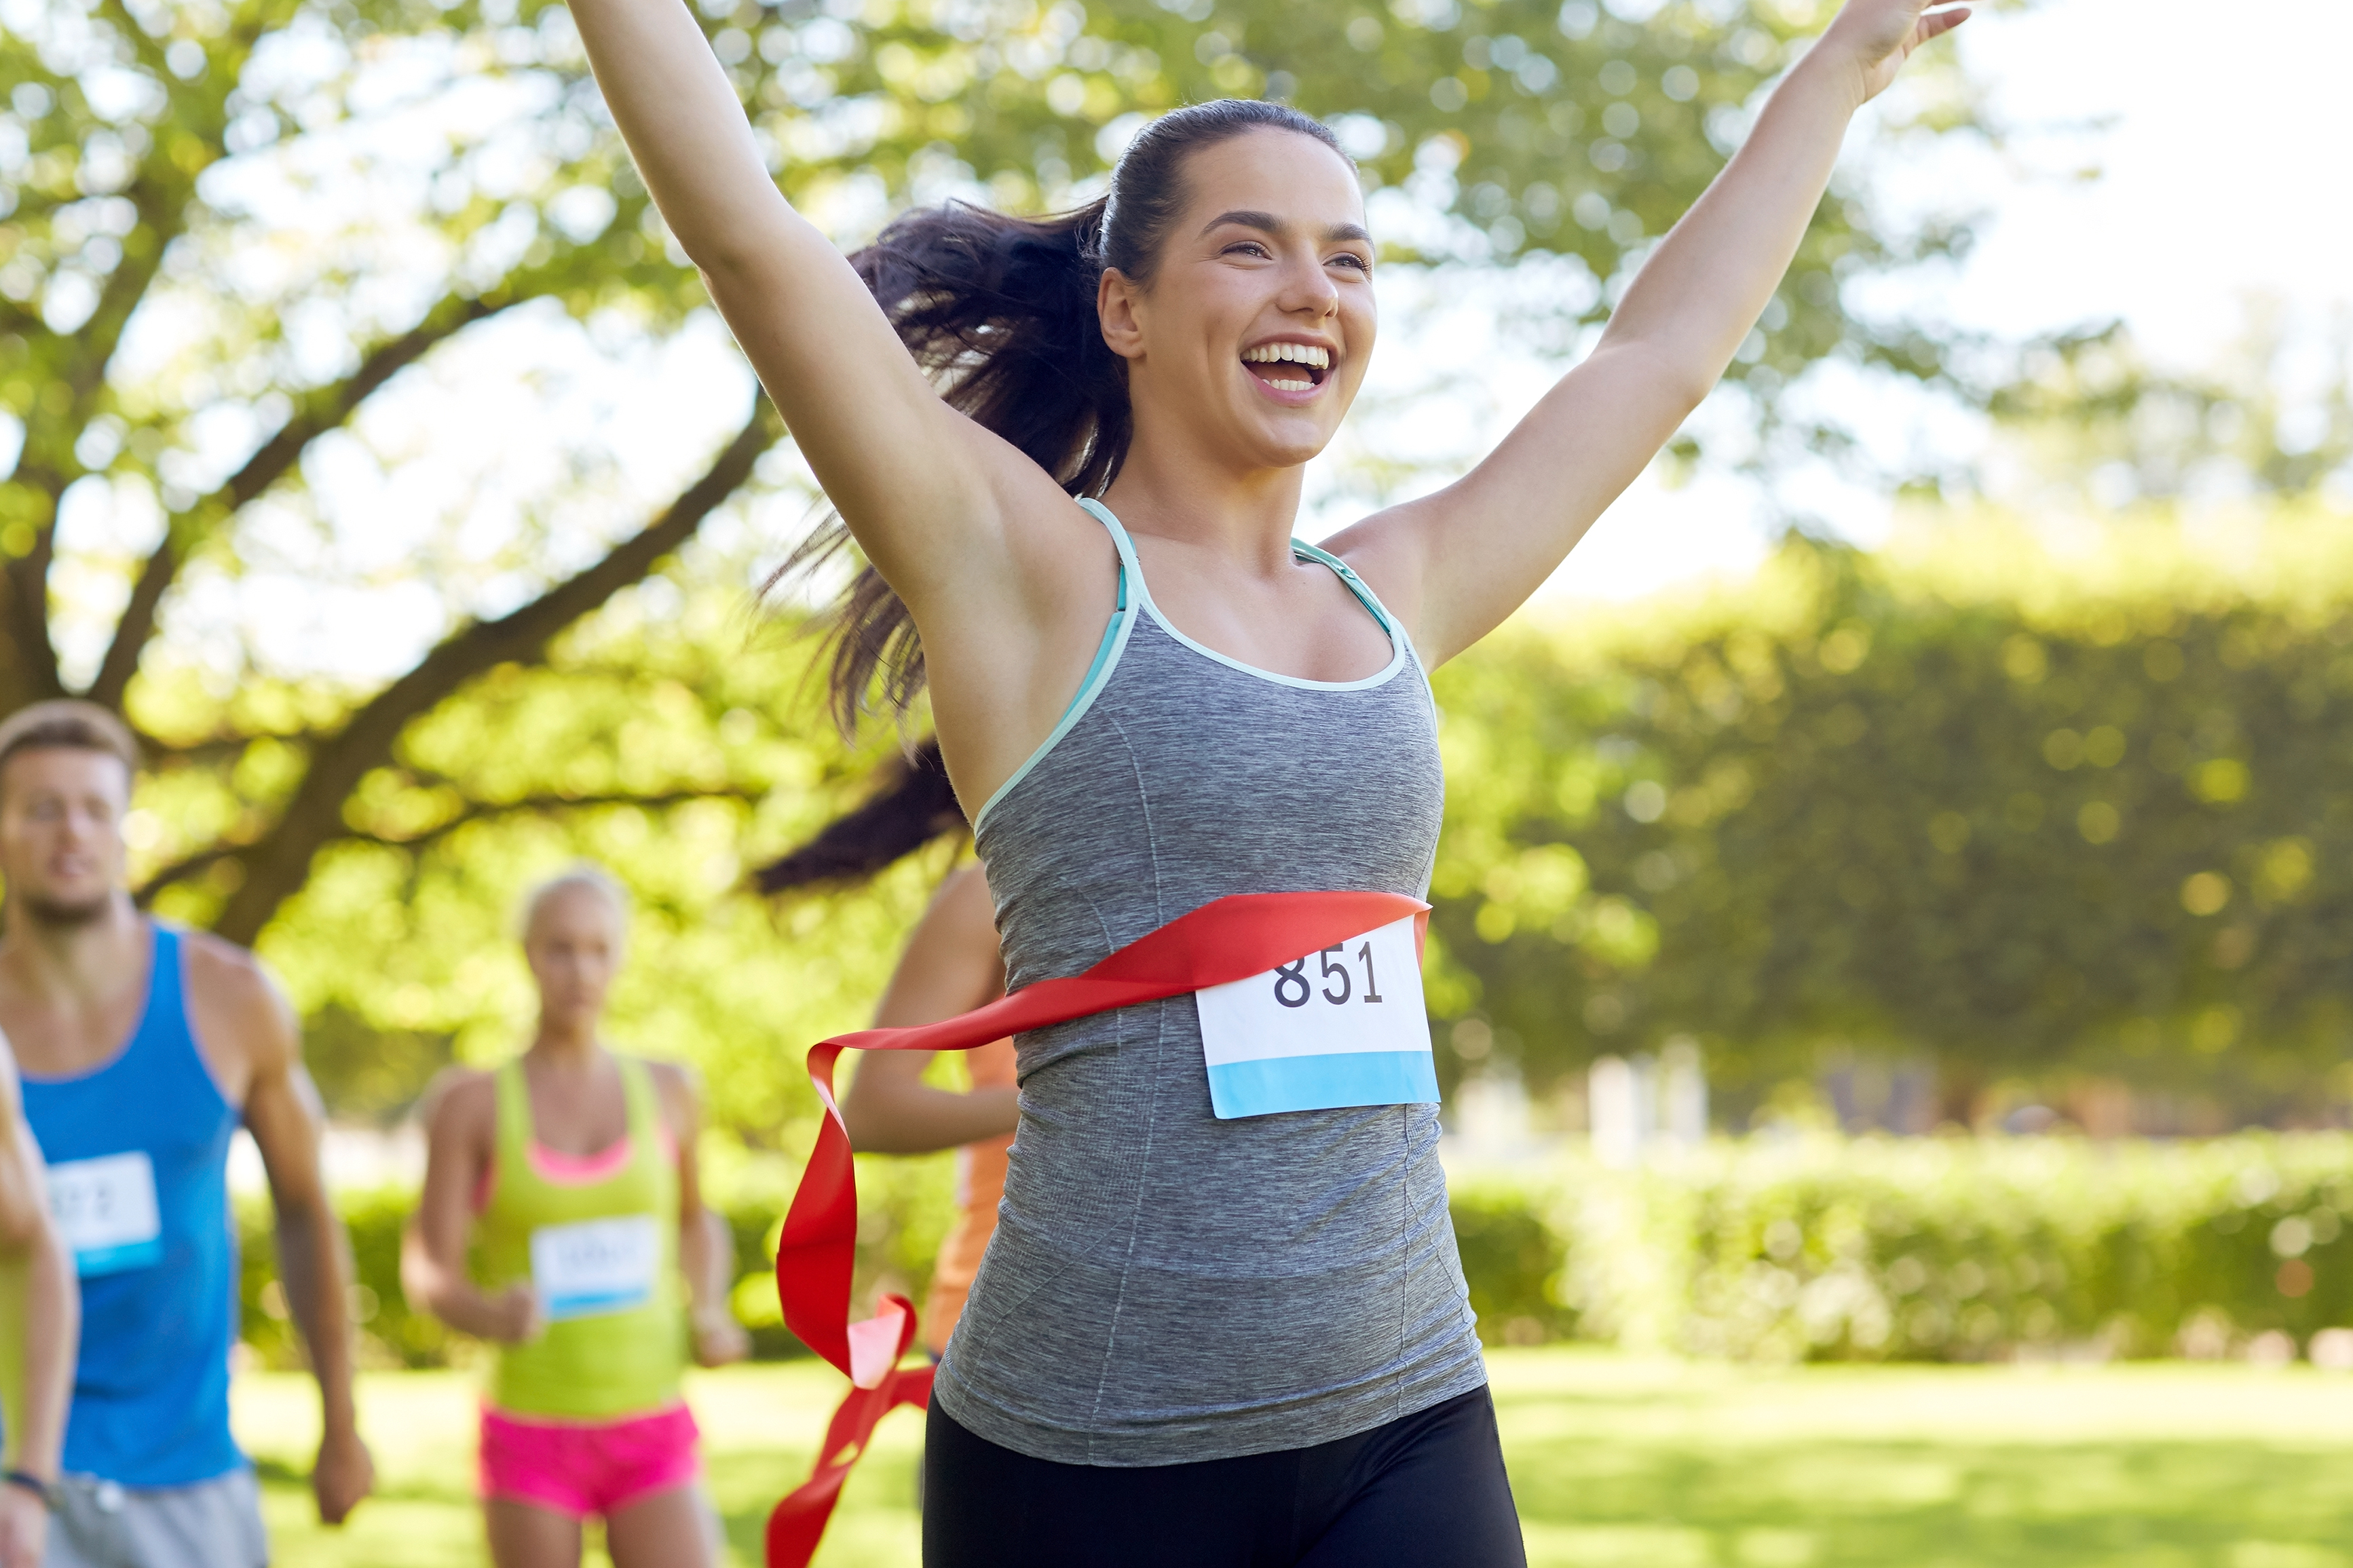 Excited woman crossing finish line